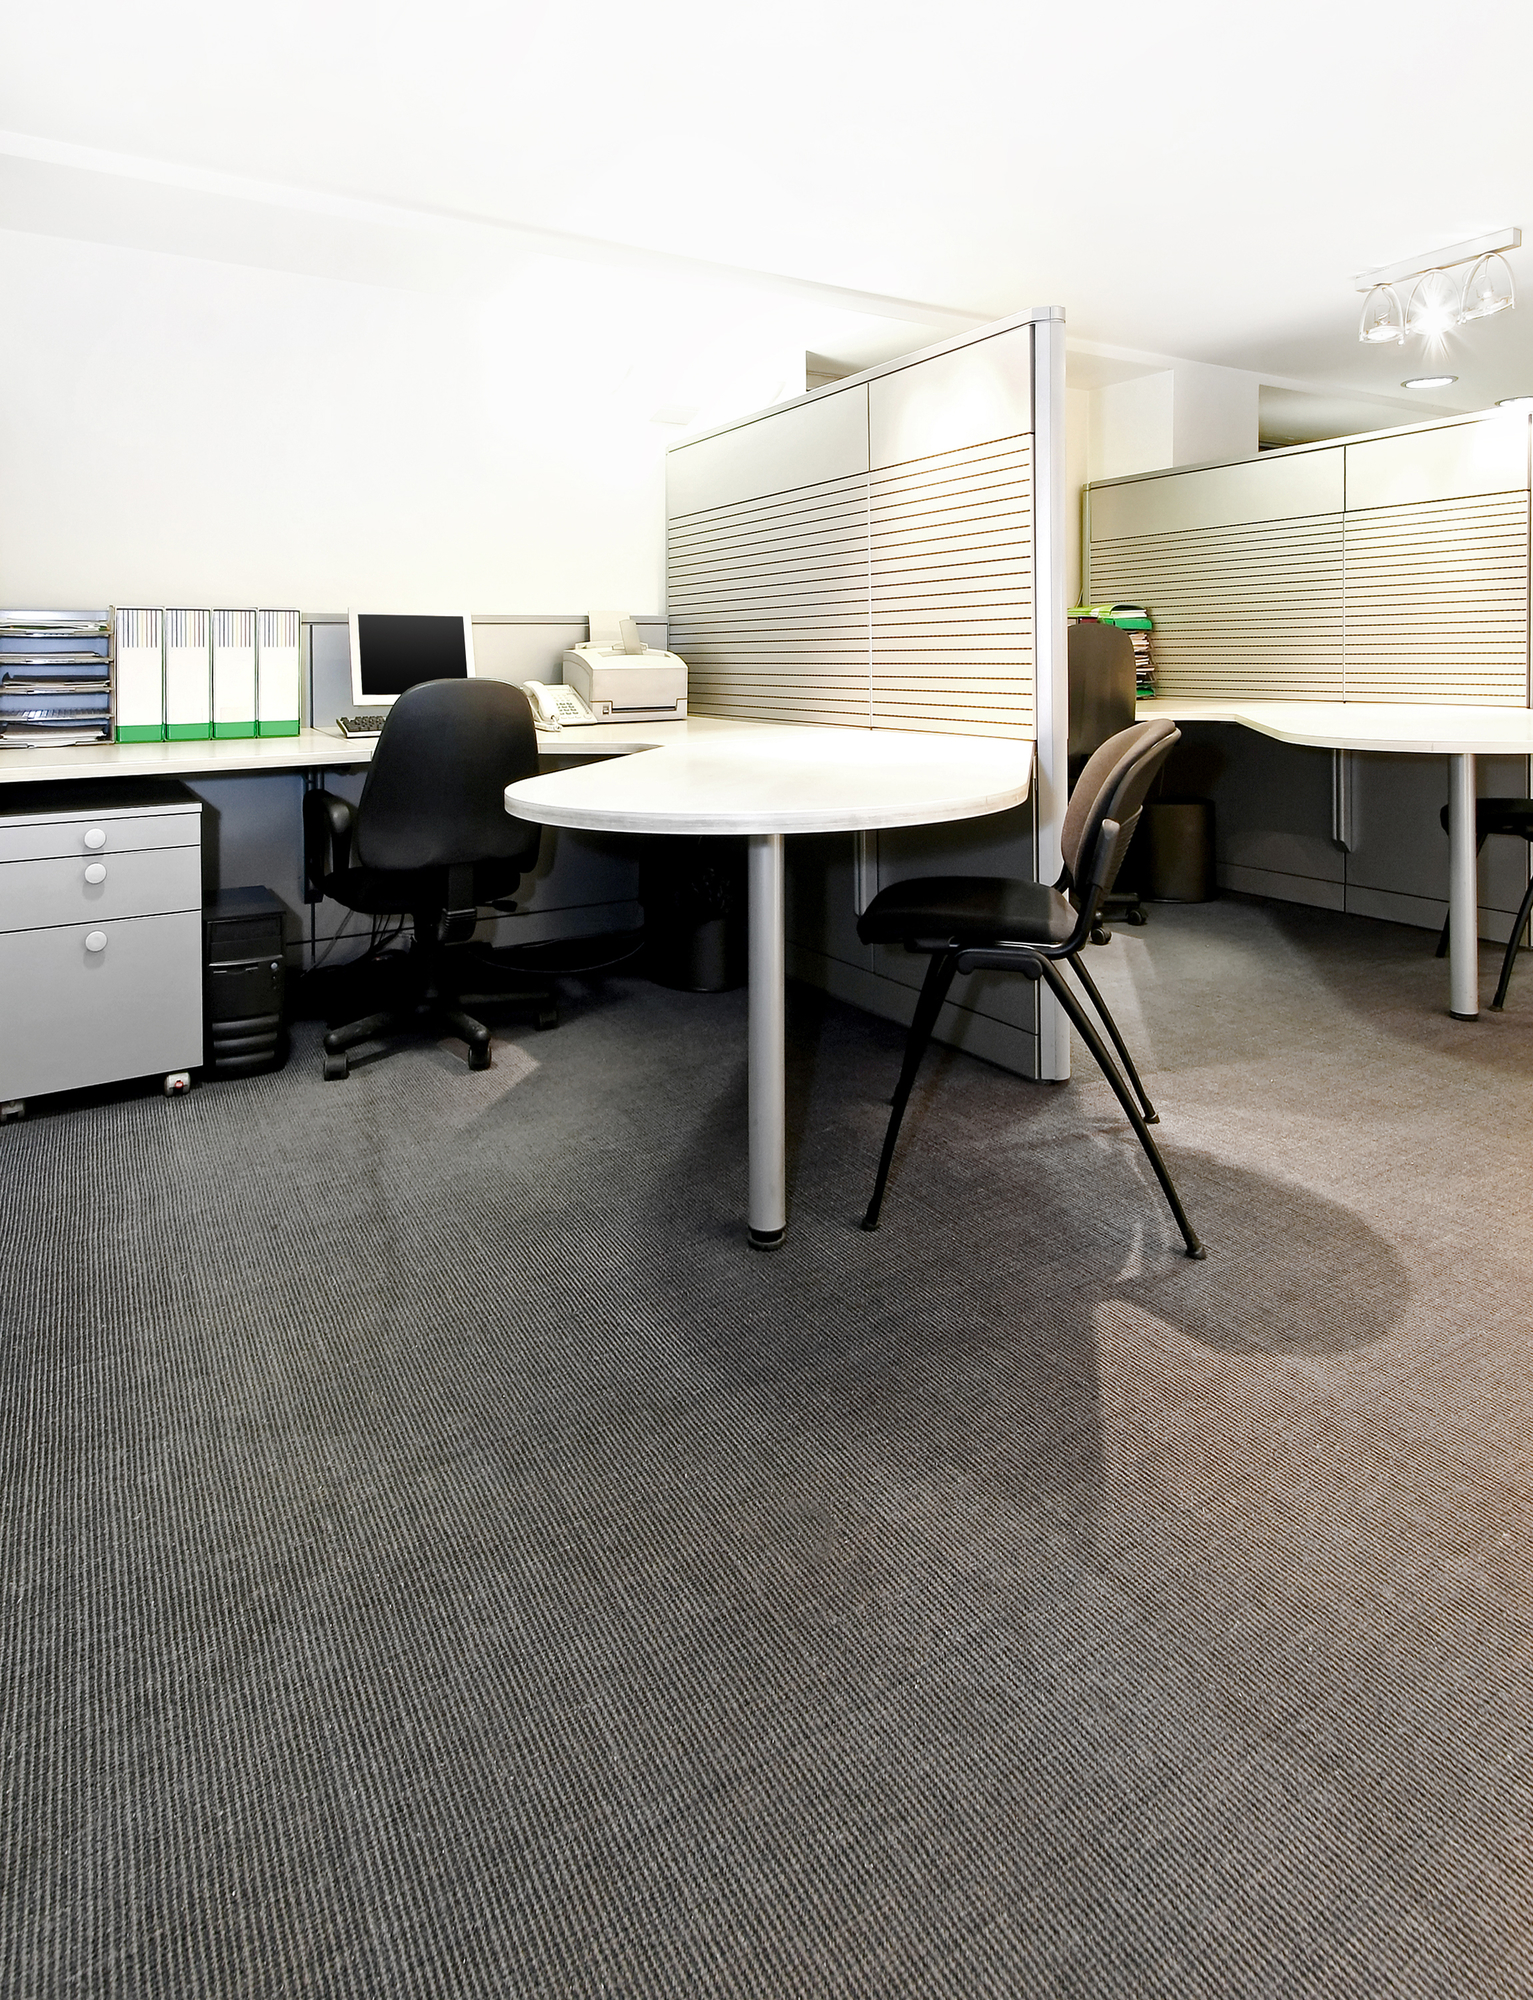 Austin, TX office cleaning service